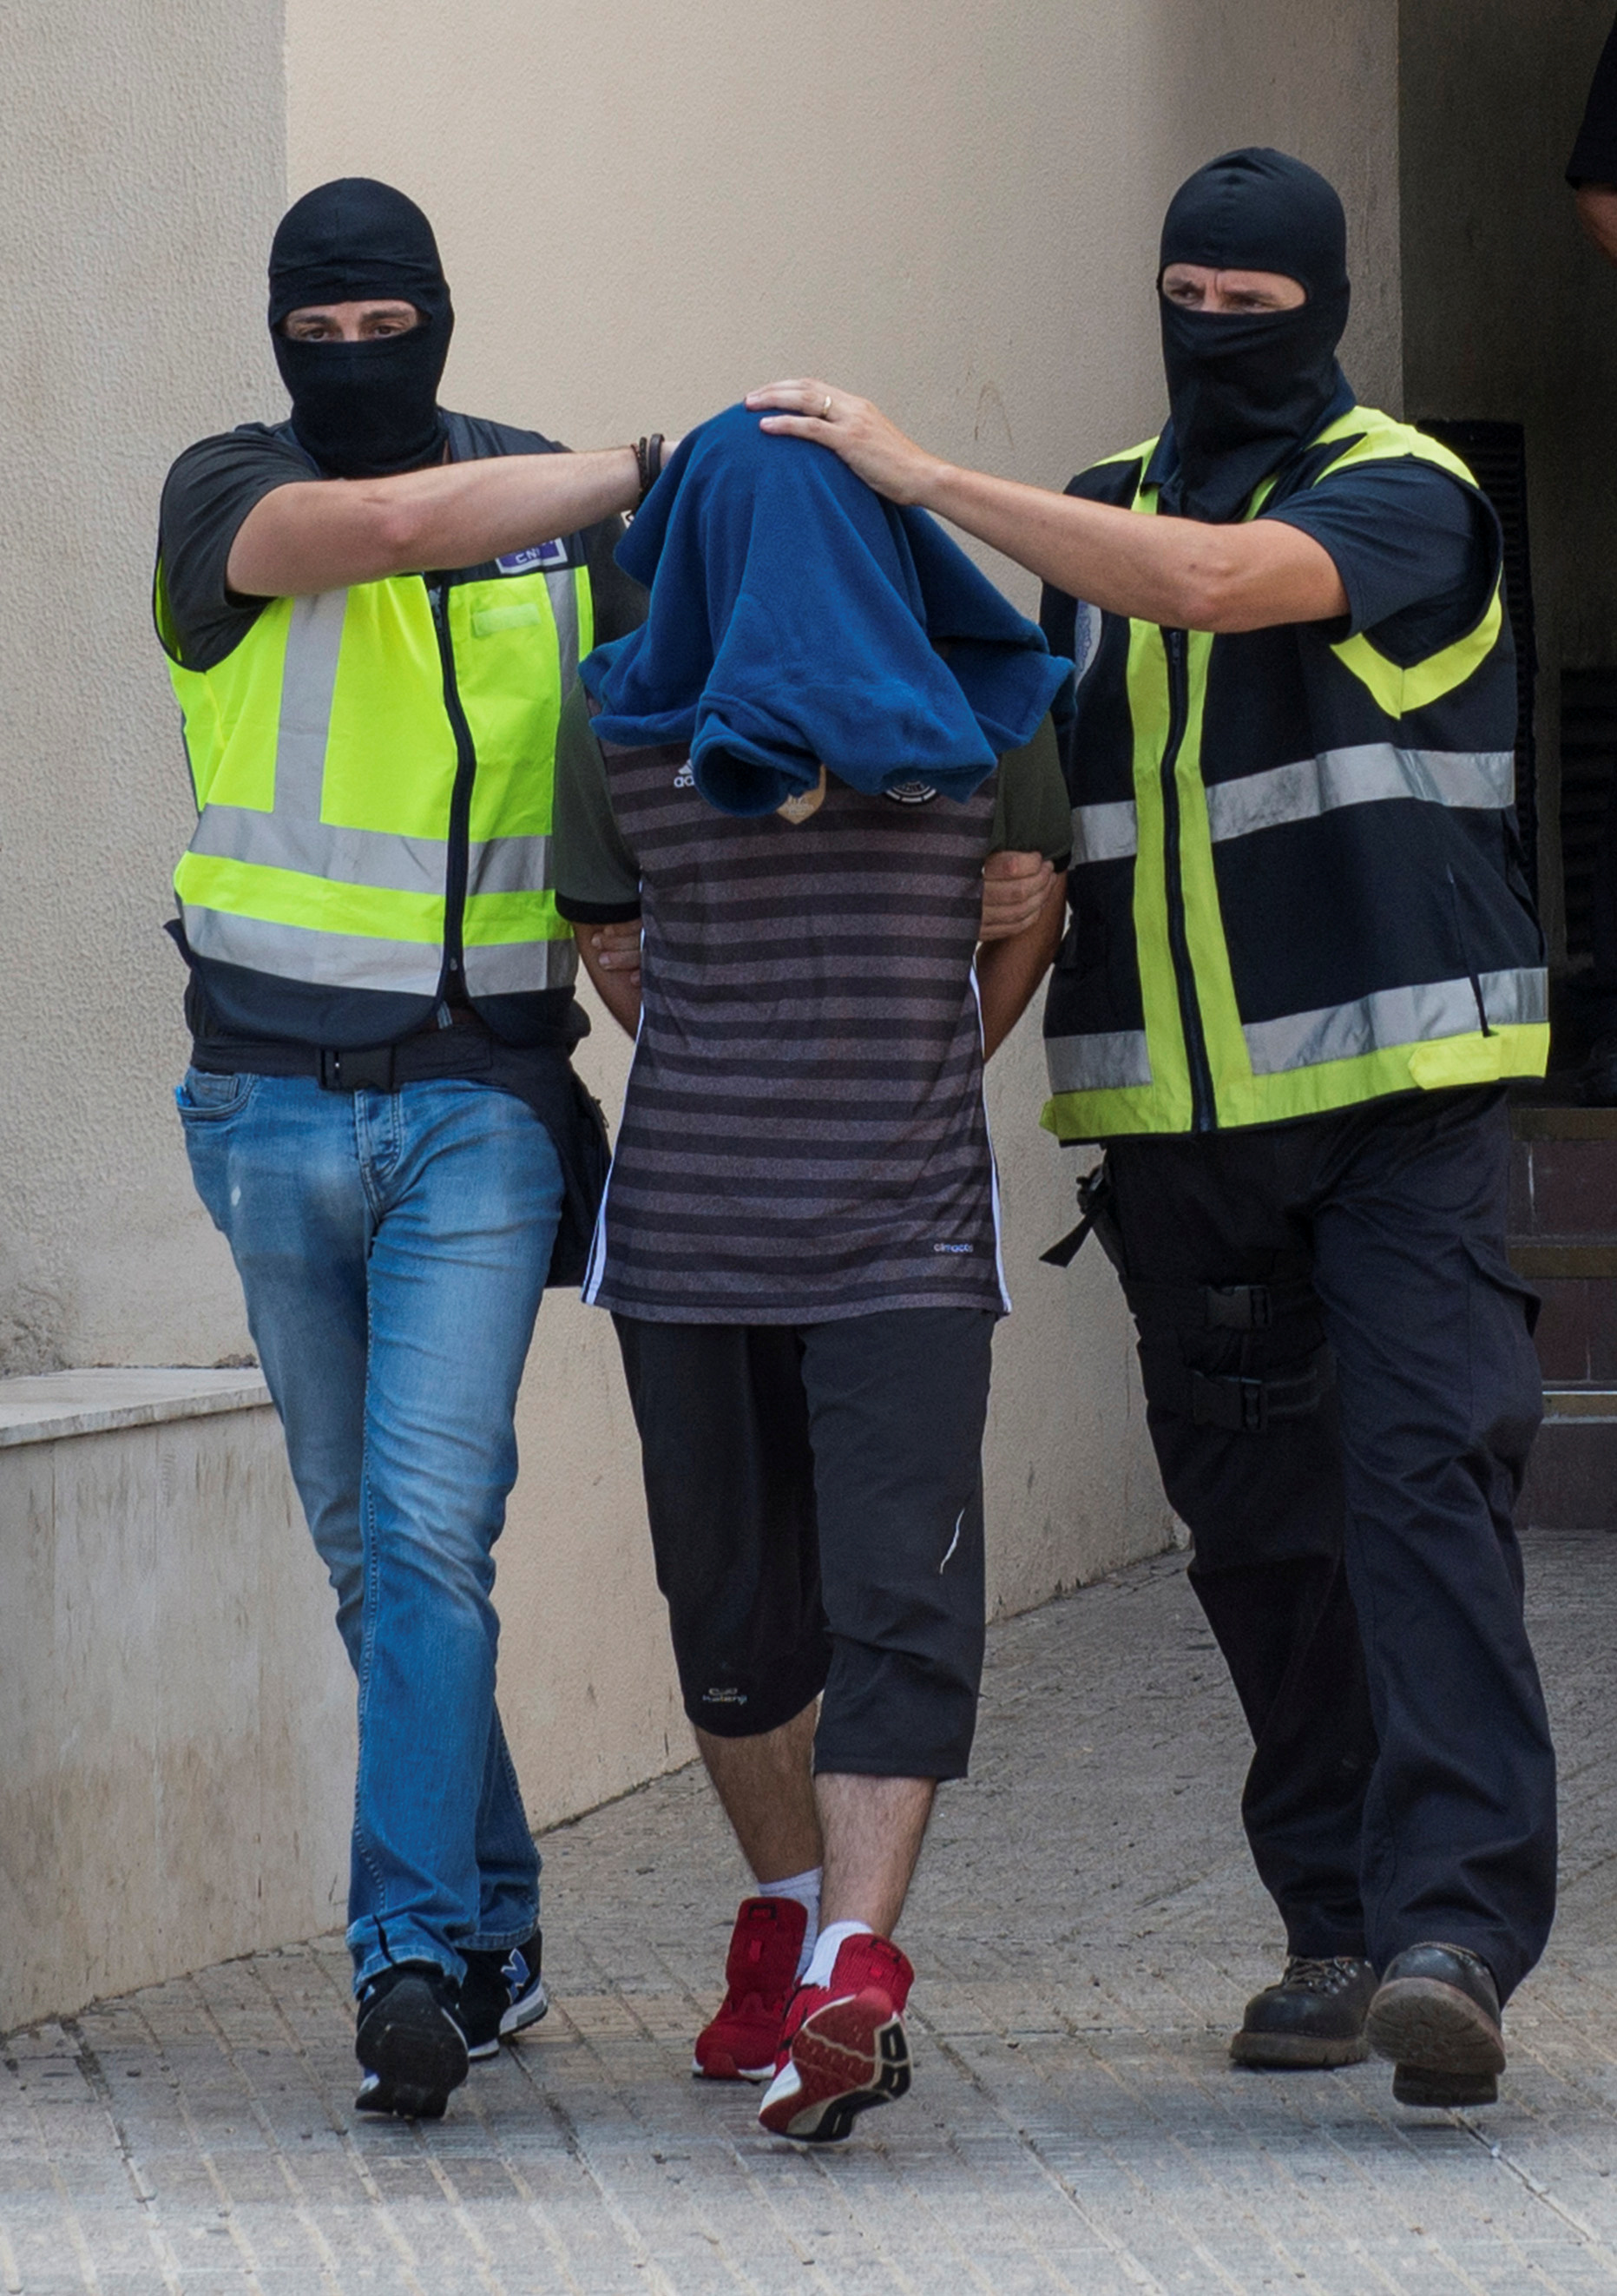 Spanish police lead a man from a police station after he was arrested for allegedly belonging to an Islamist militant cell that simulated decapitations in the Spanish north African enclave of Melilla on Sept. 6, 2017.  (REUTERS/Jesus Blasco de Avellaneda)